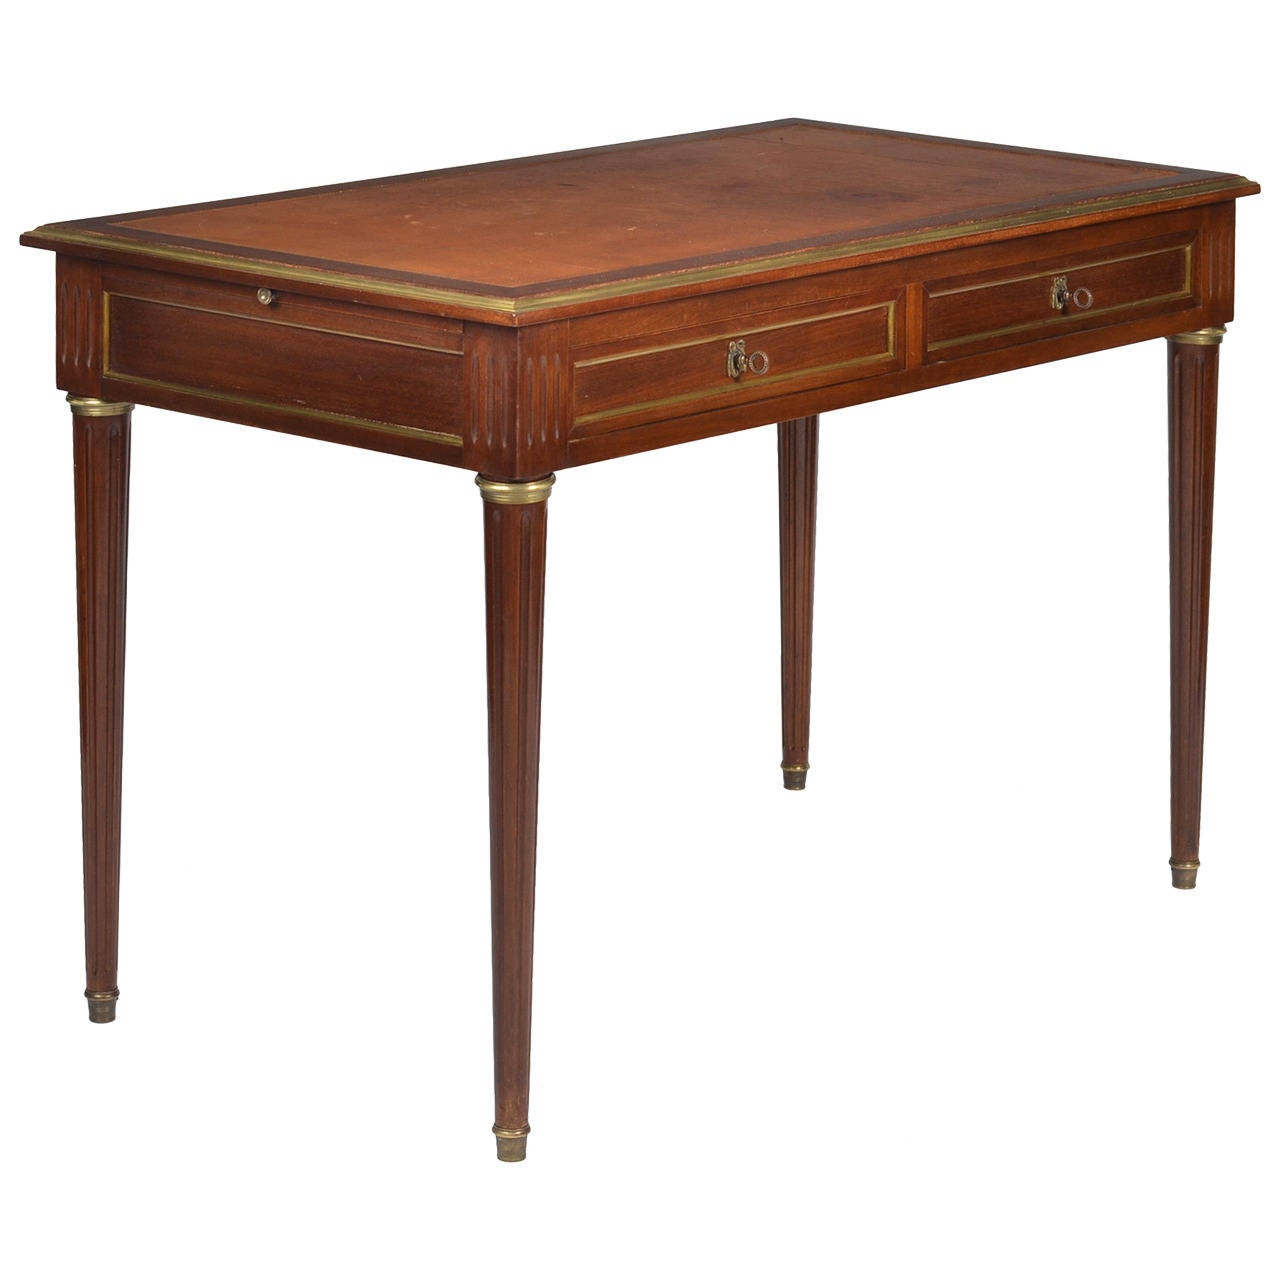 antique french writing desk Shop for anjou traditional french accent writing desk get free shipping at overstockcom - your online furniture outlet store get 5% in rewards with club o - 16979487.